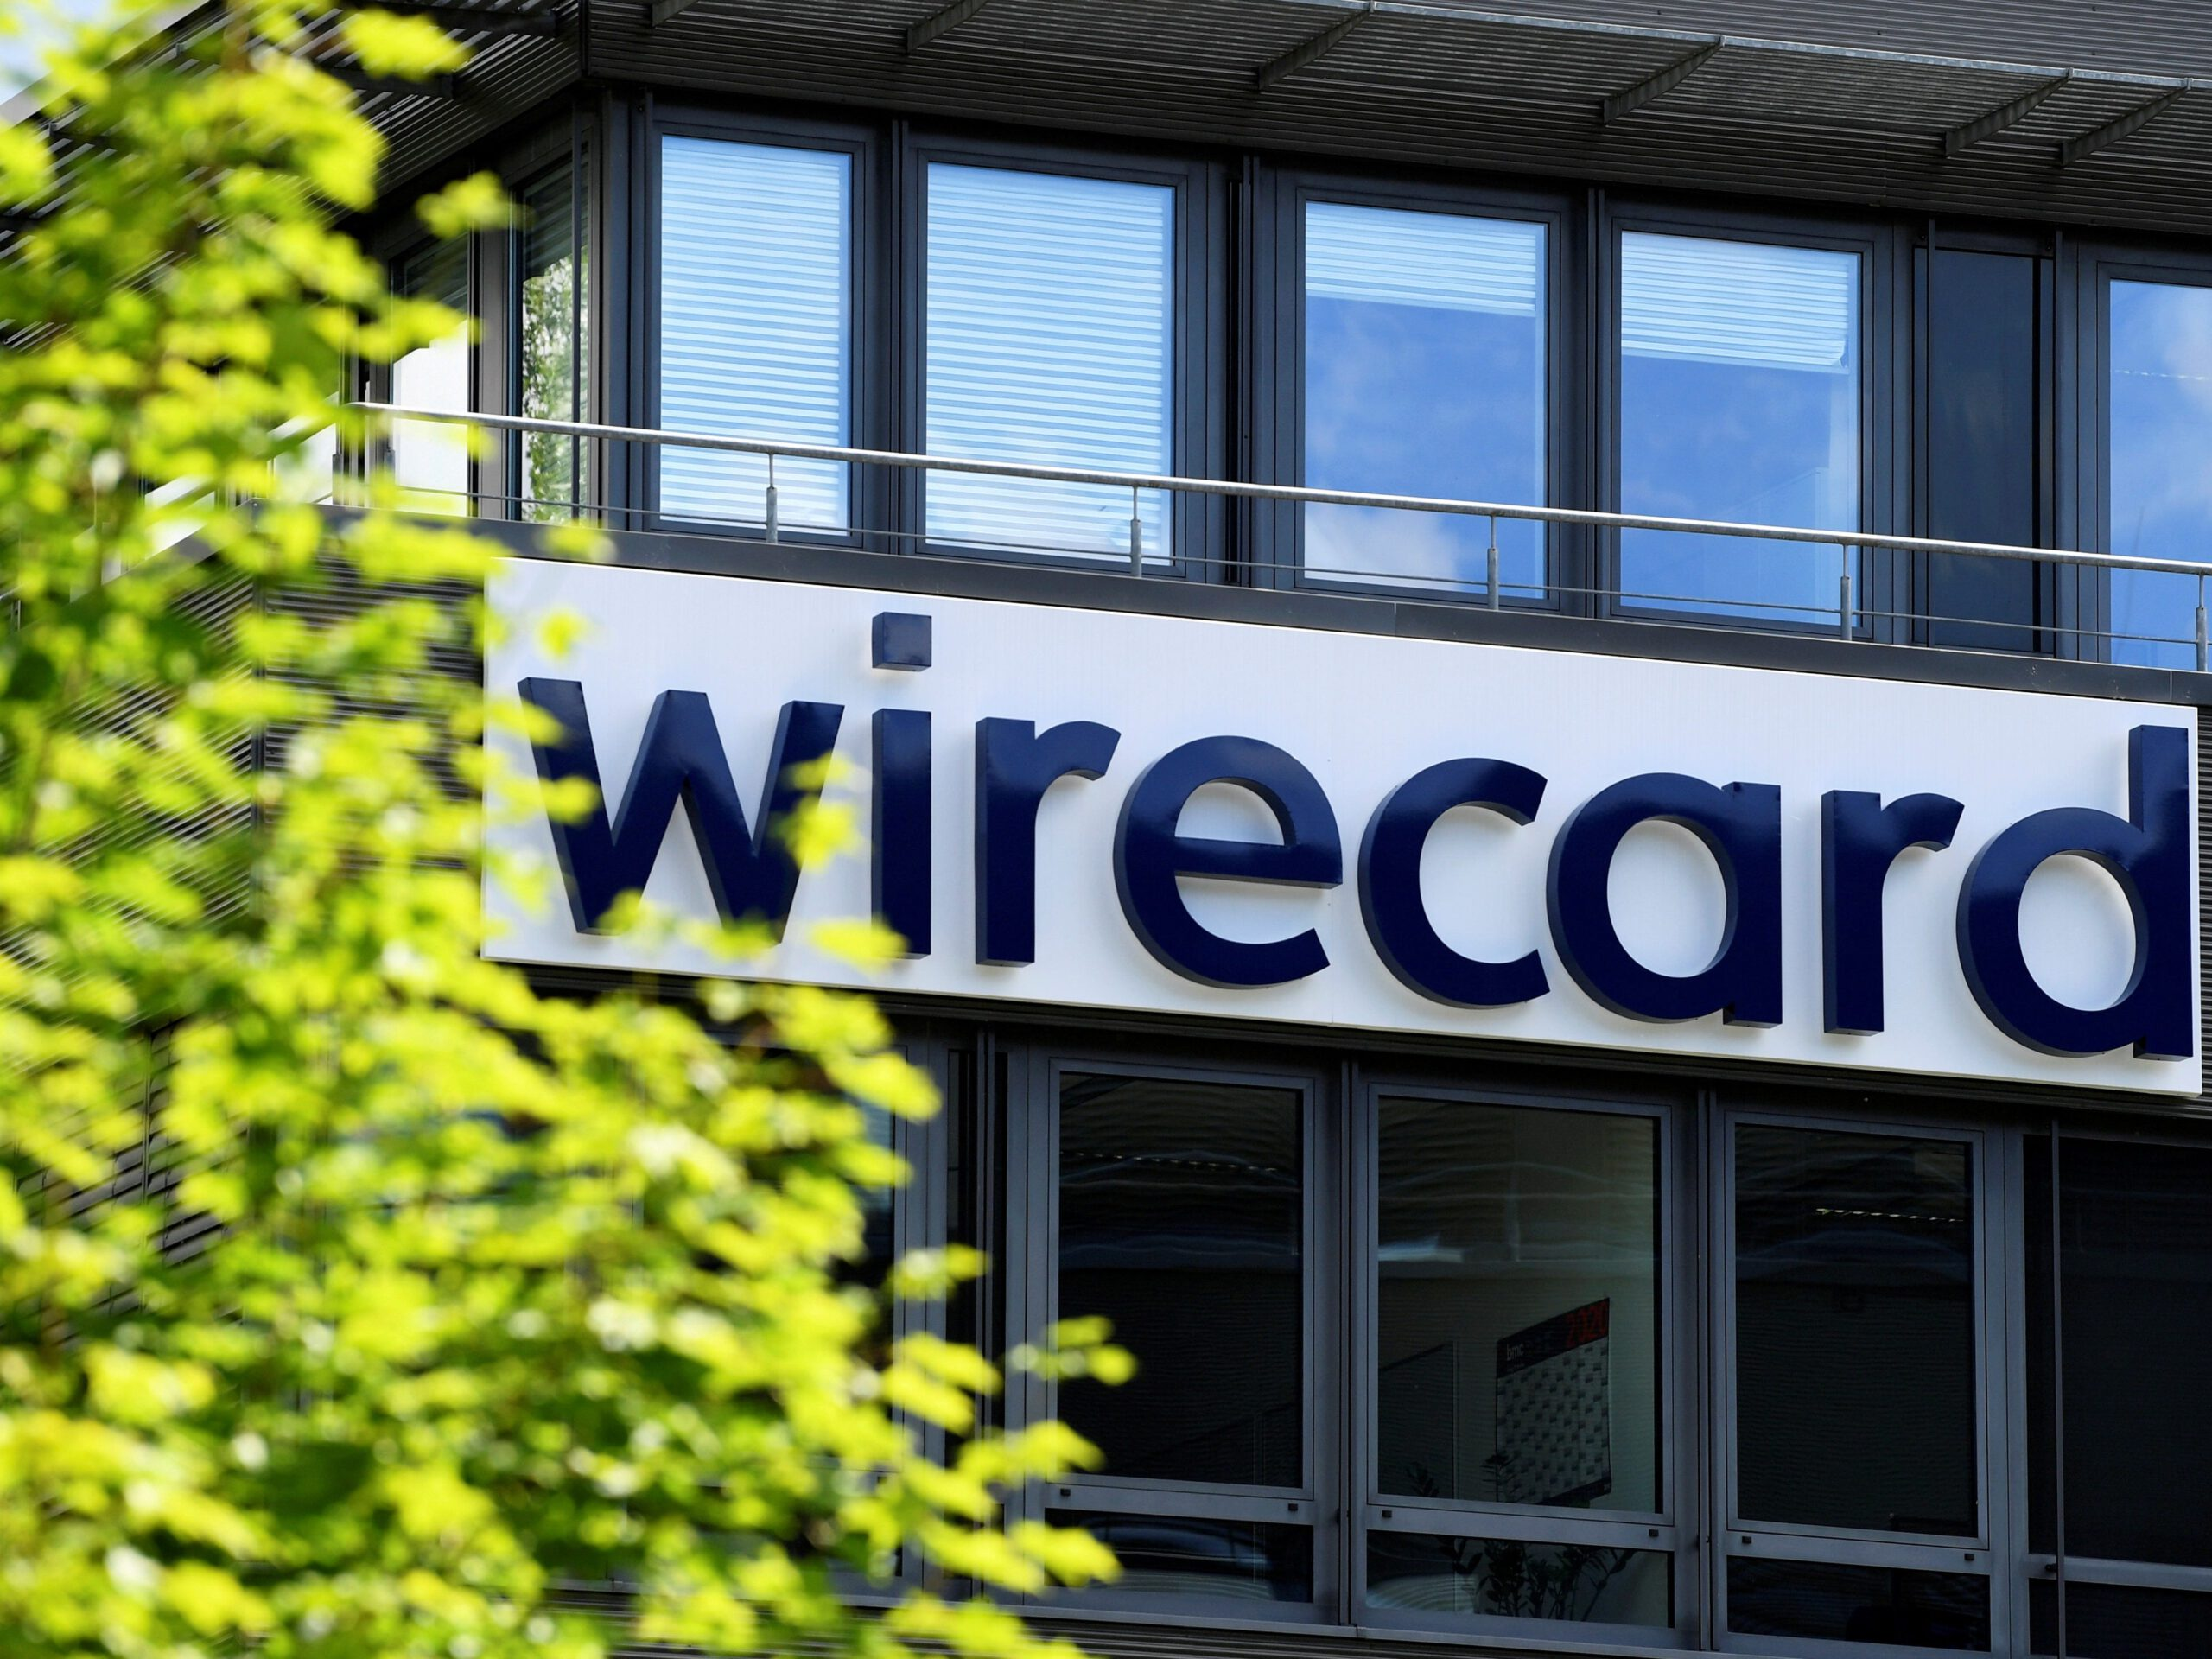 Wirecard's former No. 2 has disappeared after its $2 billion accounting scandal, and nobody knows where he is